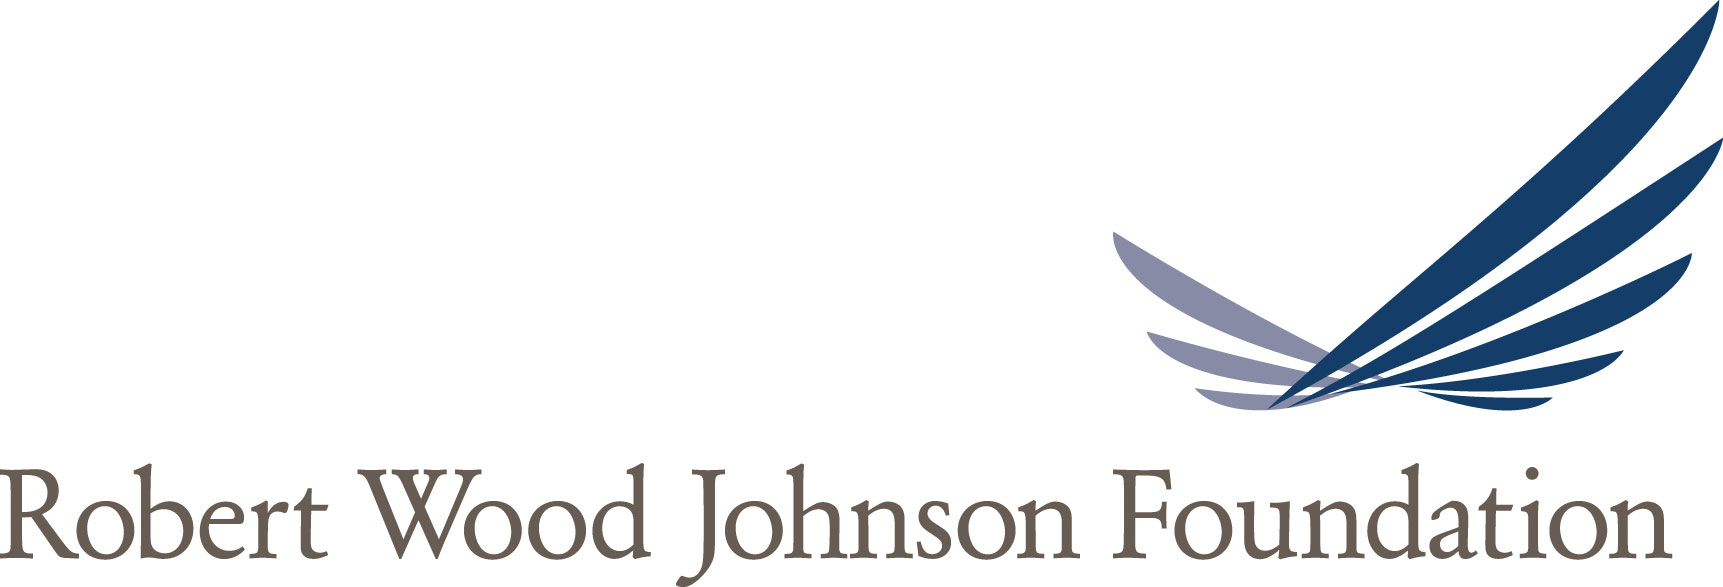 robert wood johnson dissertation funding Funding opportunities our college has received funding from the robert wood johnson foundation for two incoming 2017 phd dissertation or dnp project proposal.